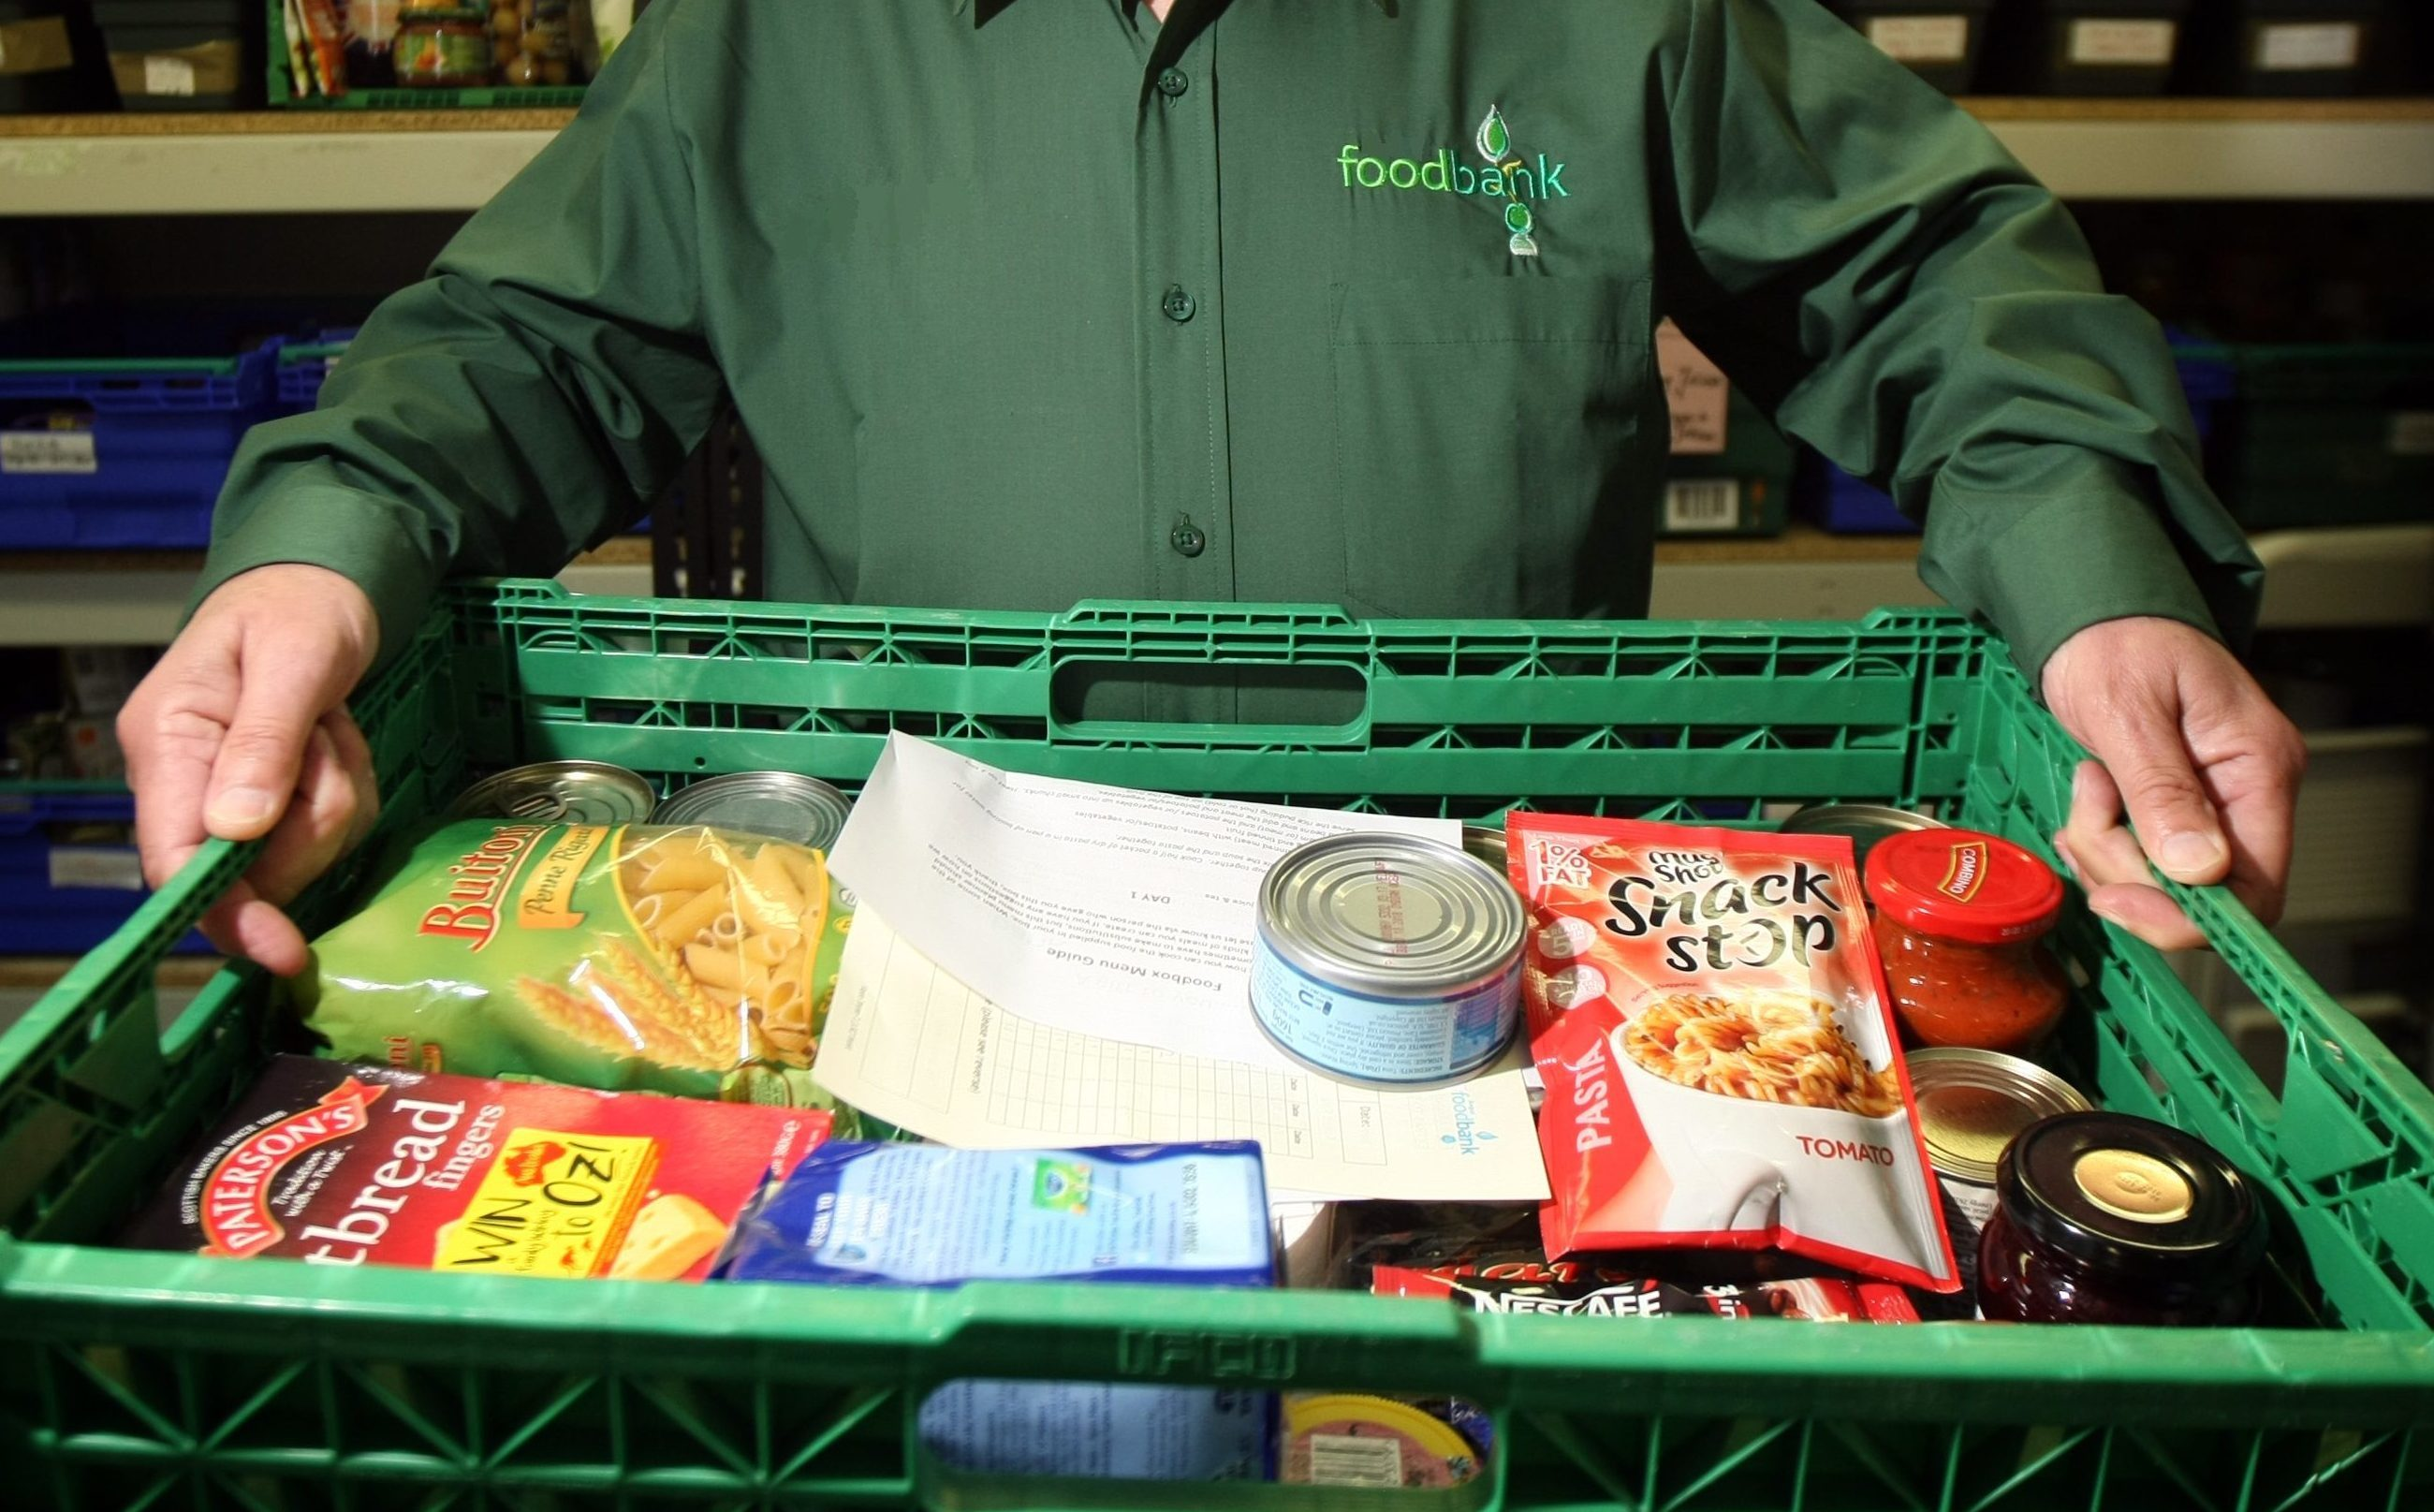 Demand at foodbanks is increasing